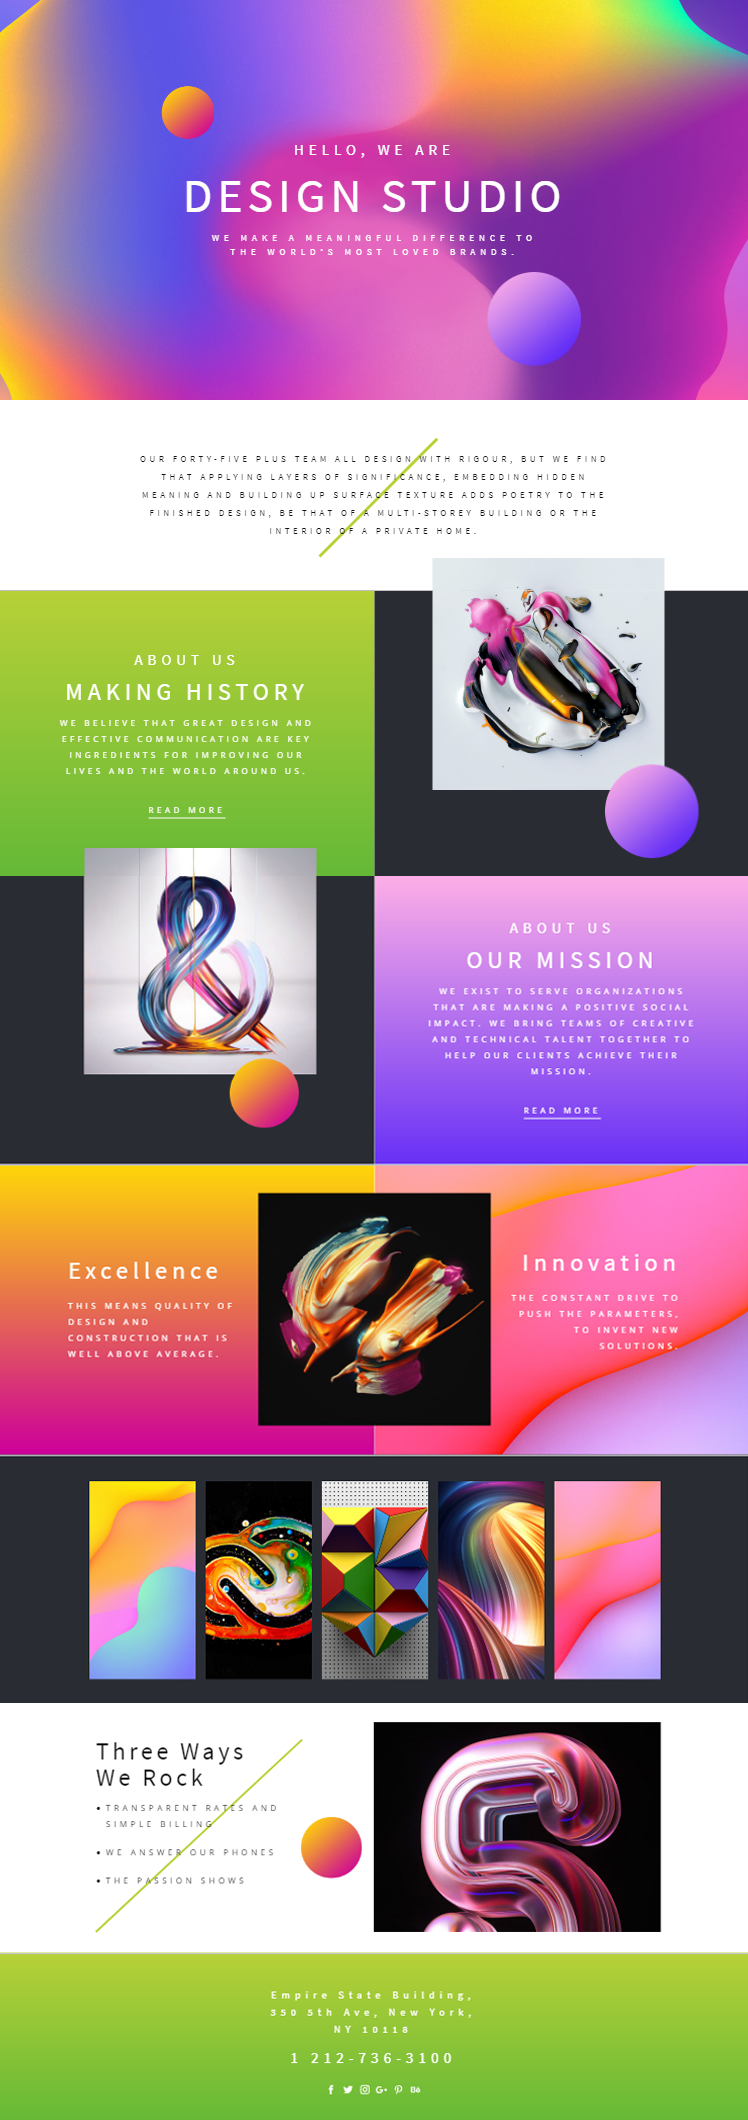 Nicepage Is A New Powerful Web Design Tool And An Easy To Use Builder For Your Websites B Web Design Inspiration Creative Web Design Tools Web Design Websites